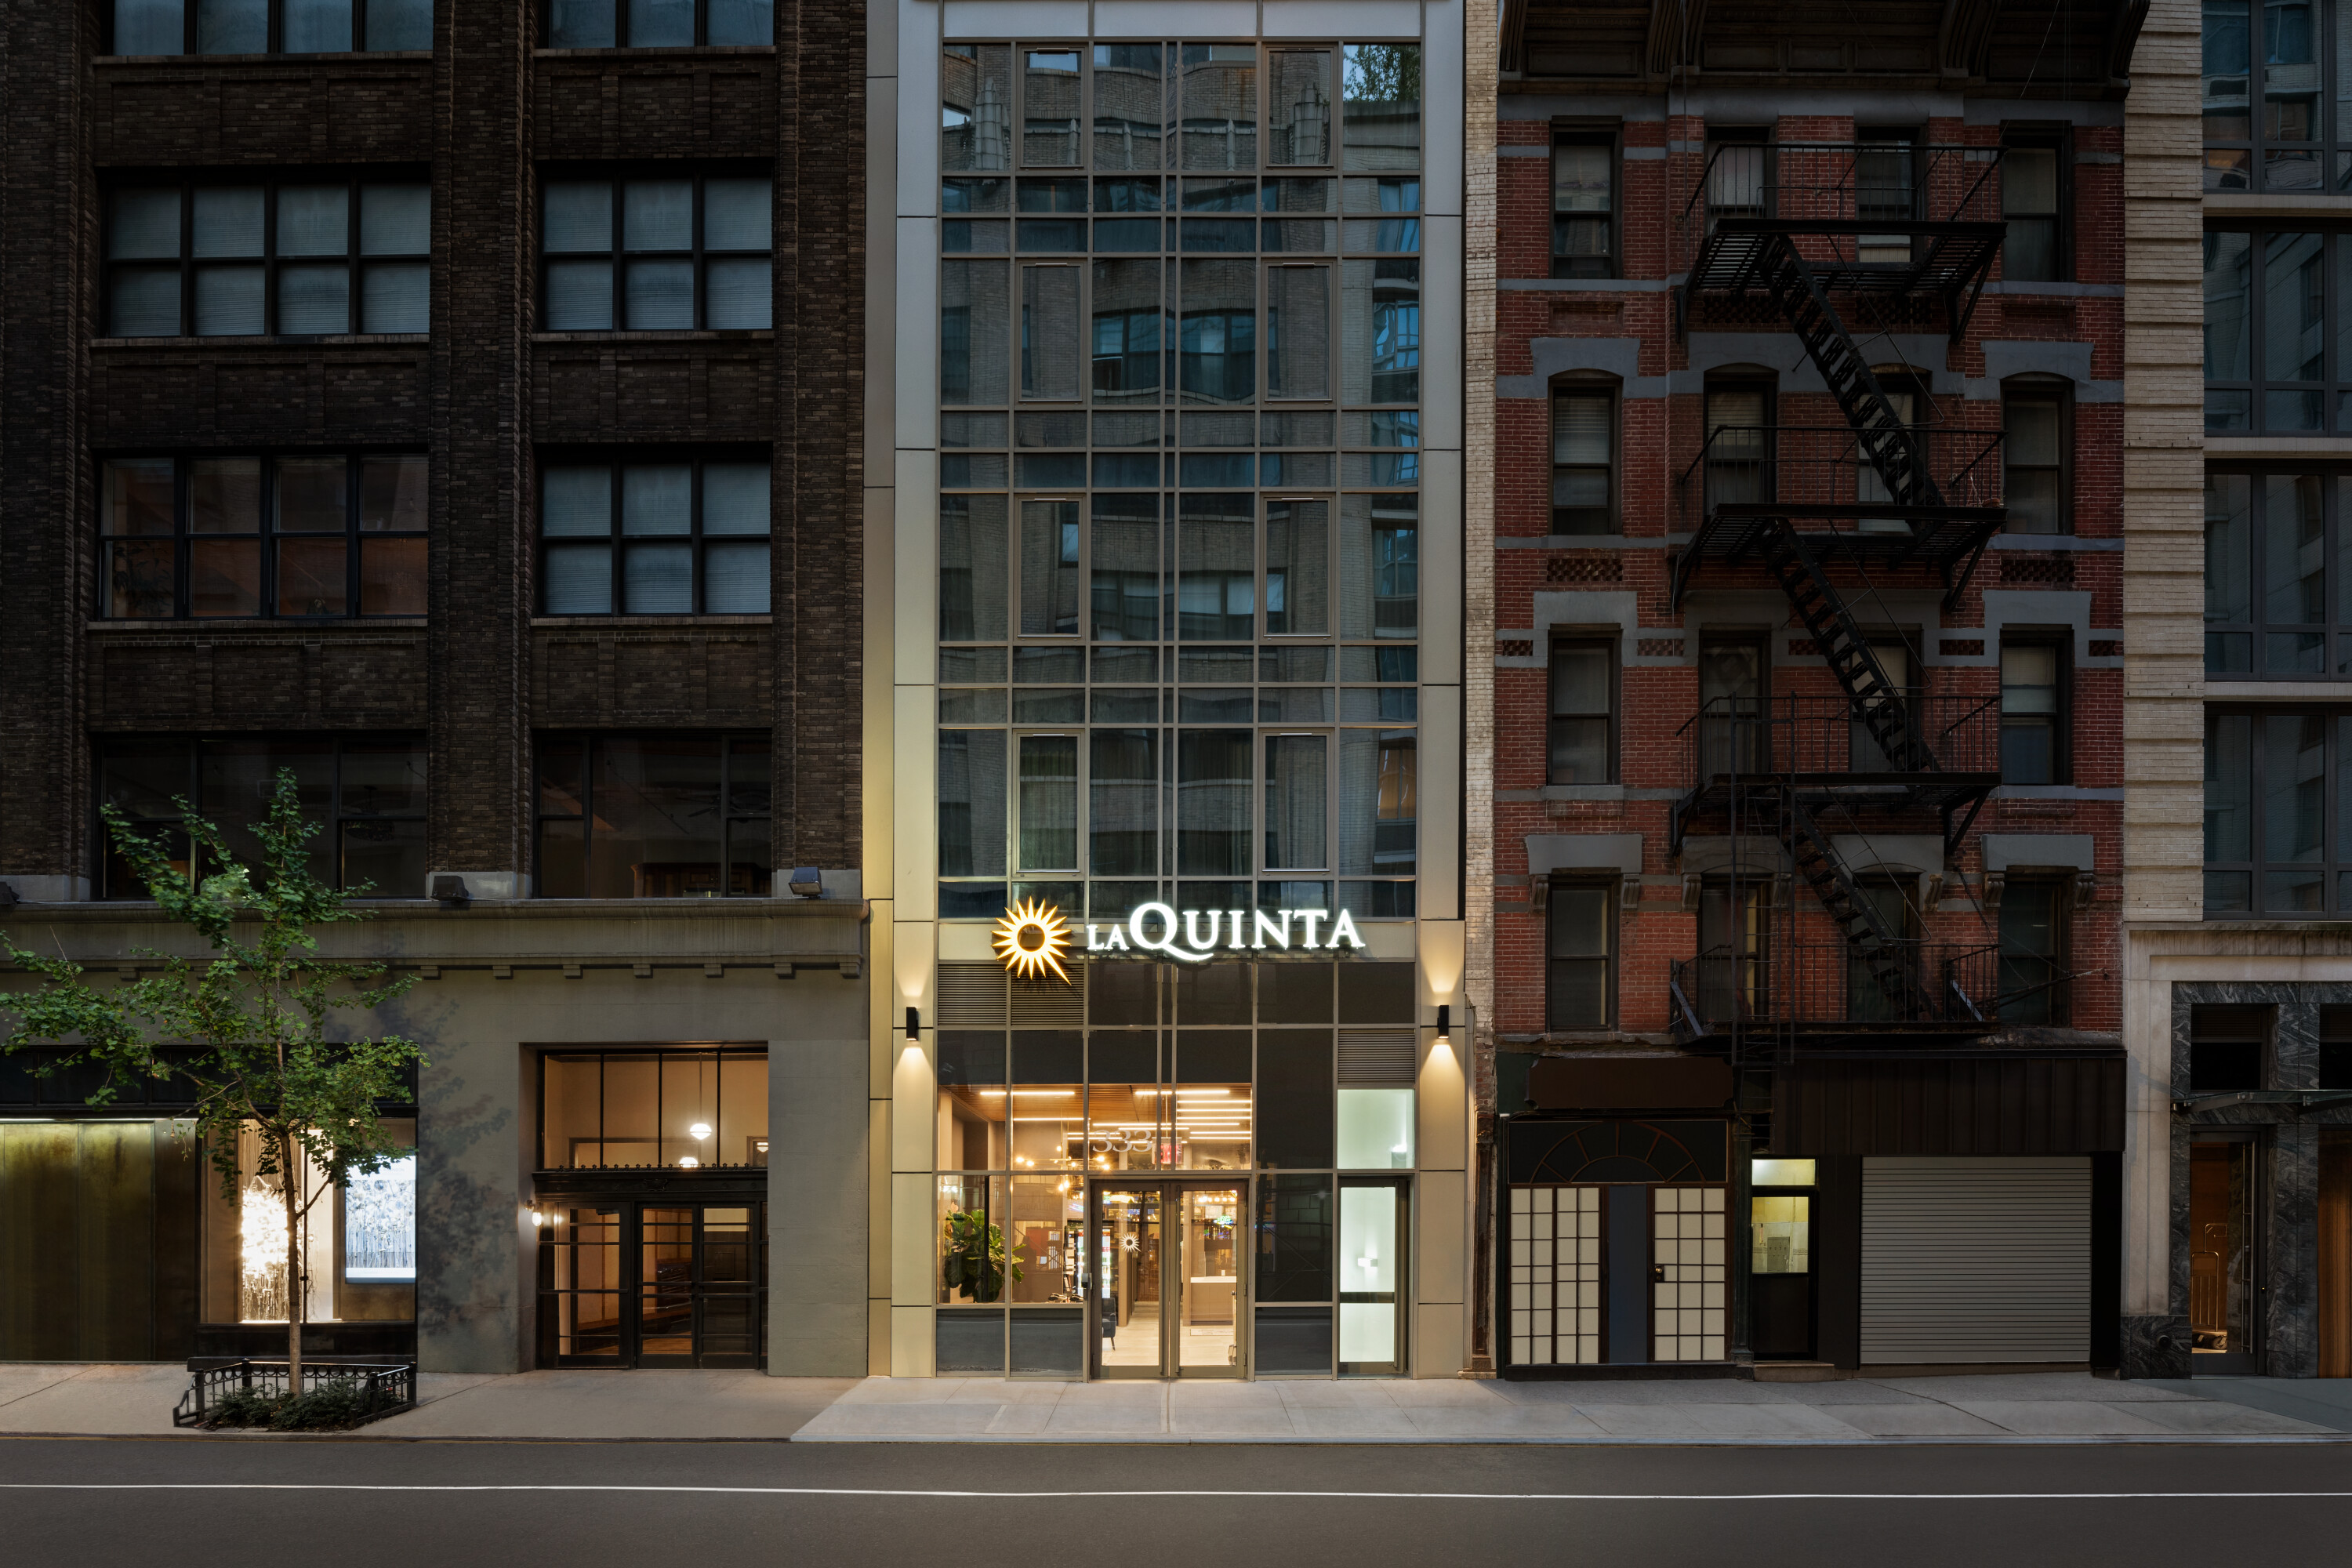 https://www.hotelsbyday.com/_data/default-hotel_image/4/20133/la-quinta-333-west-38th-street-new-york-exterior-1419446.jpg